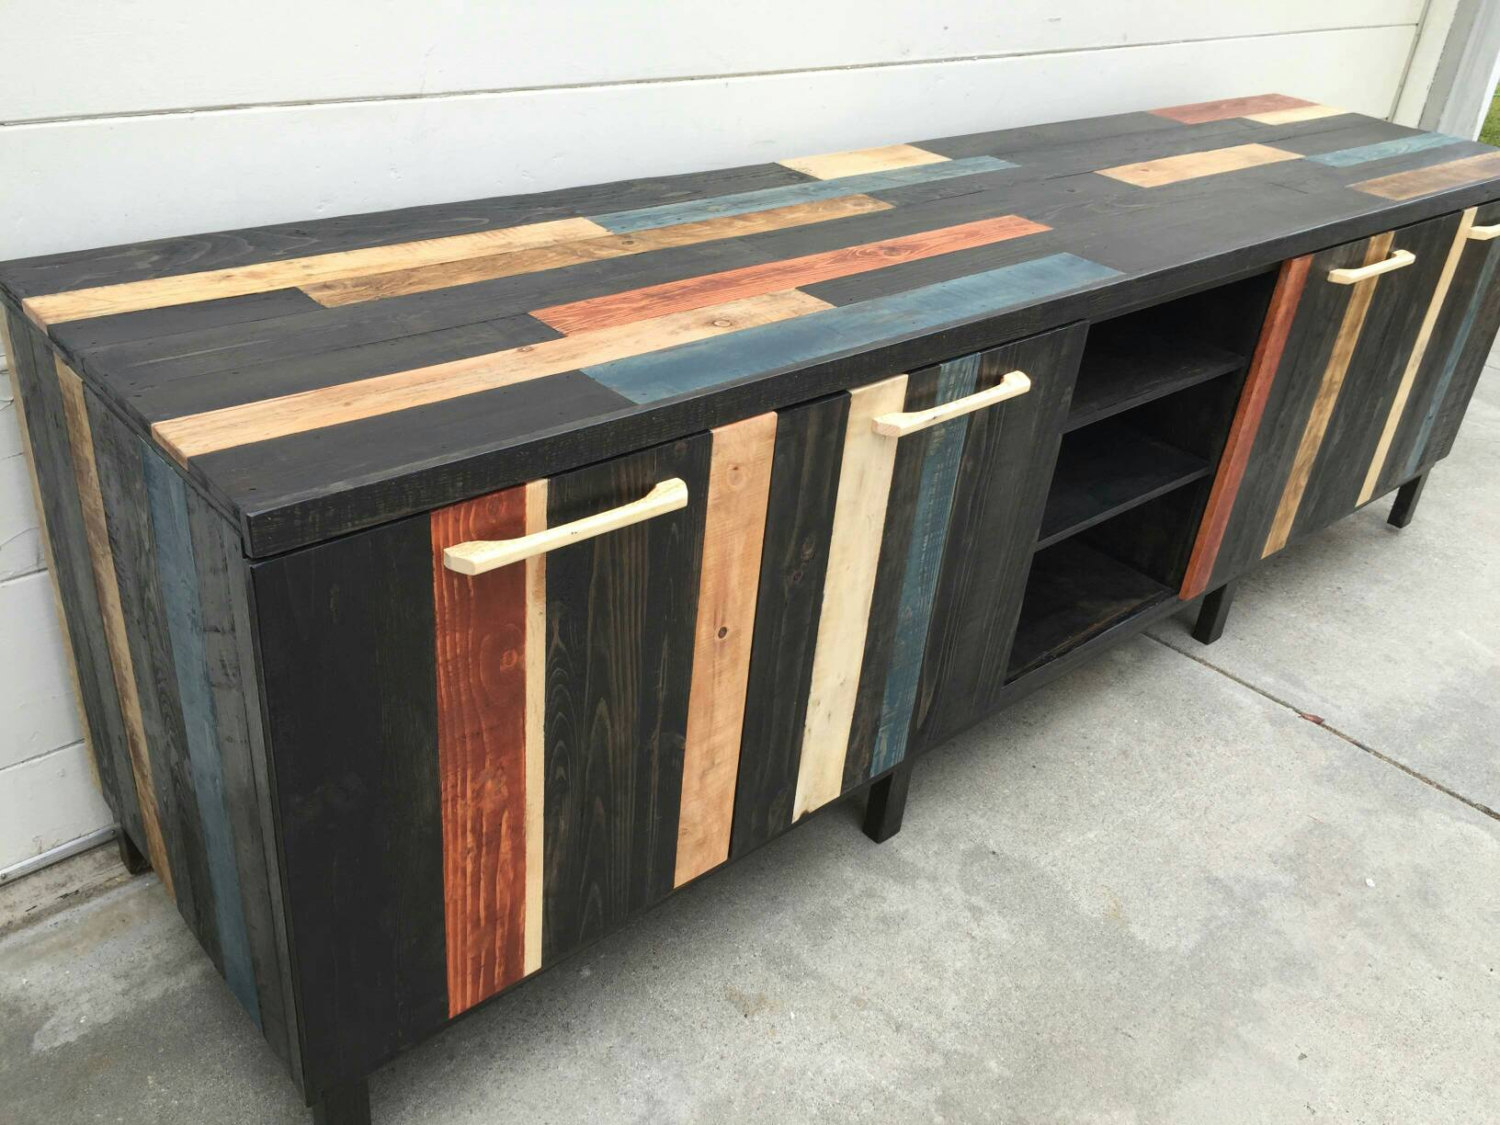 18 Remarkable Furniture Designs Made From Recycled Pallet Wood on Pallet Design  id=25203